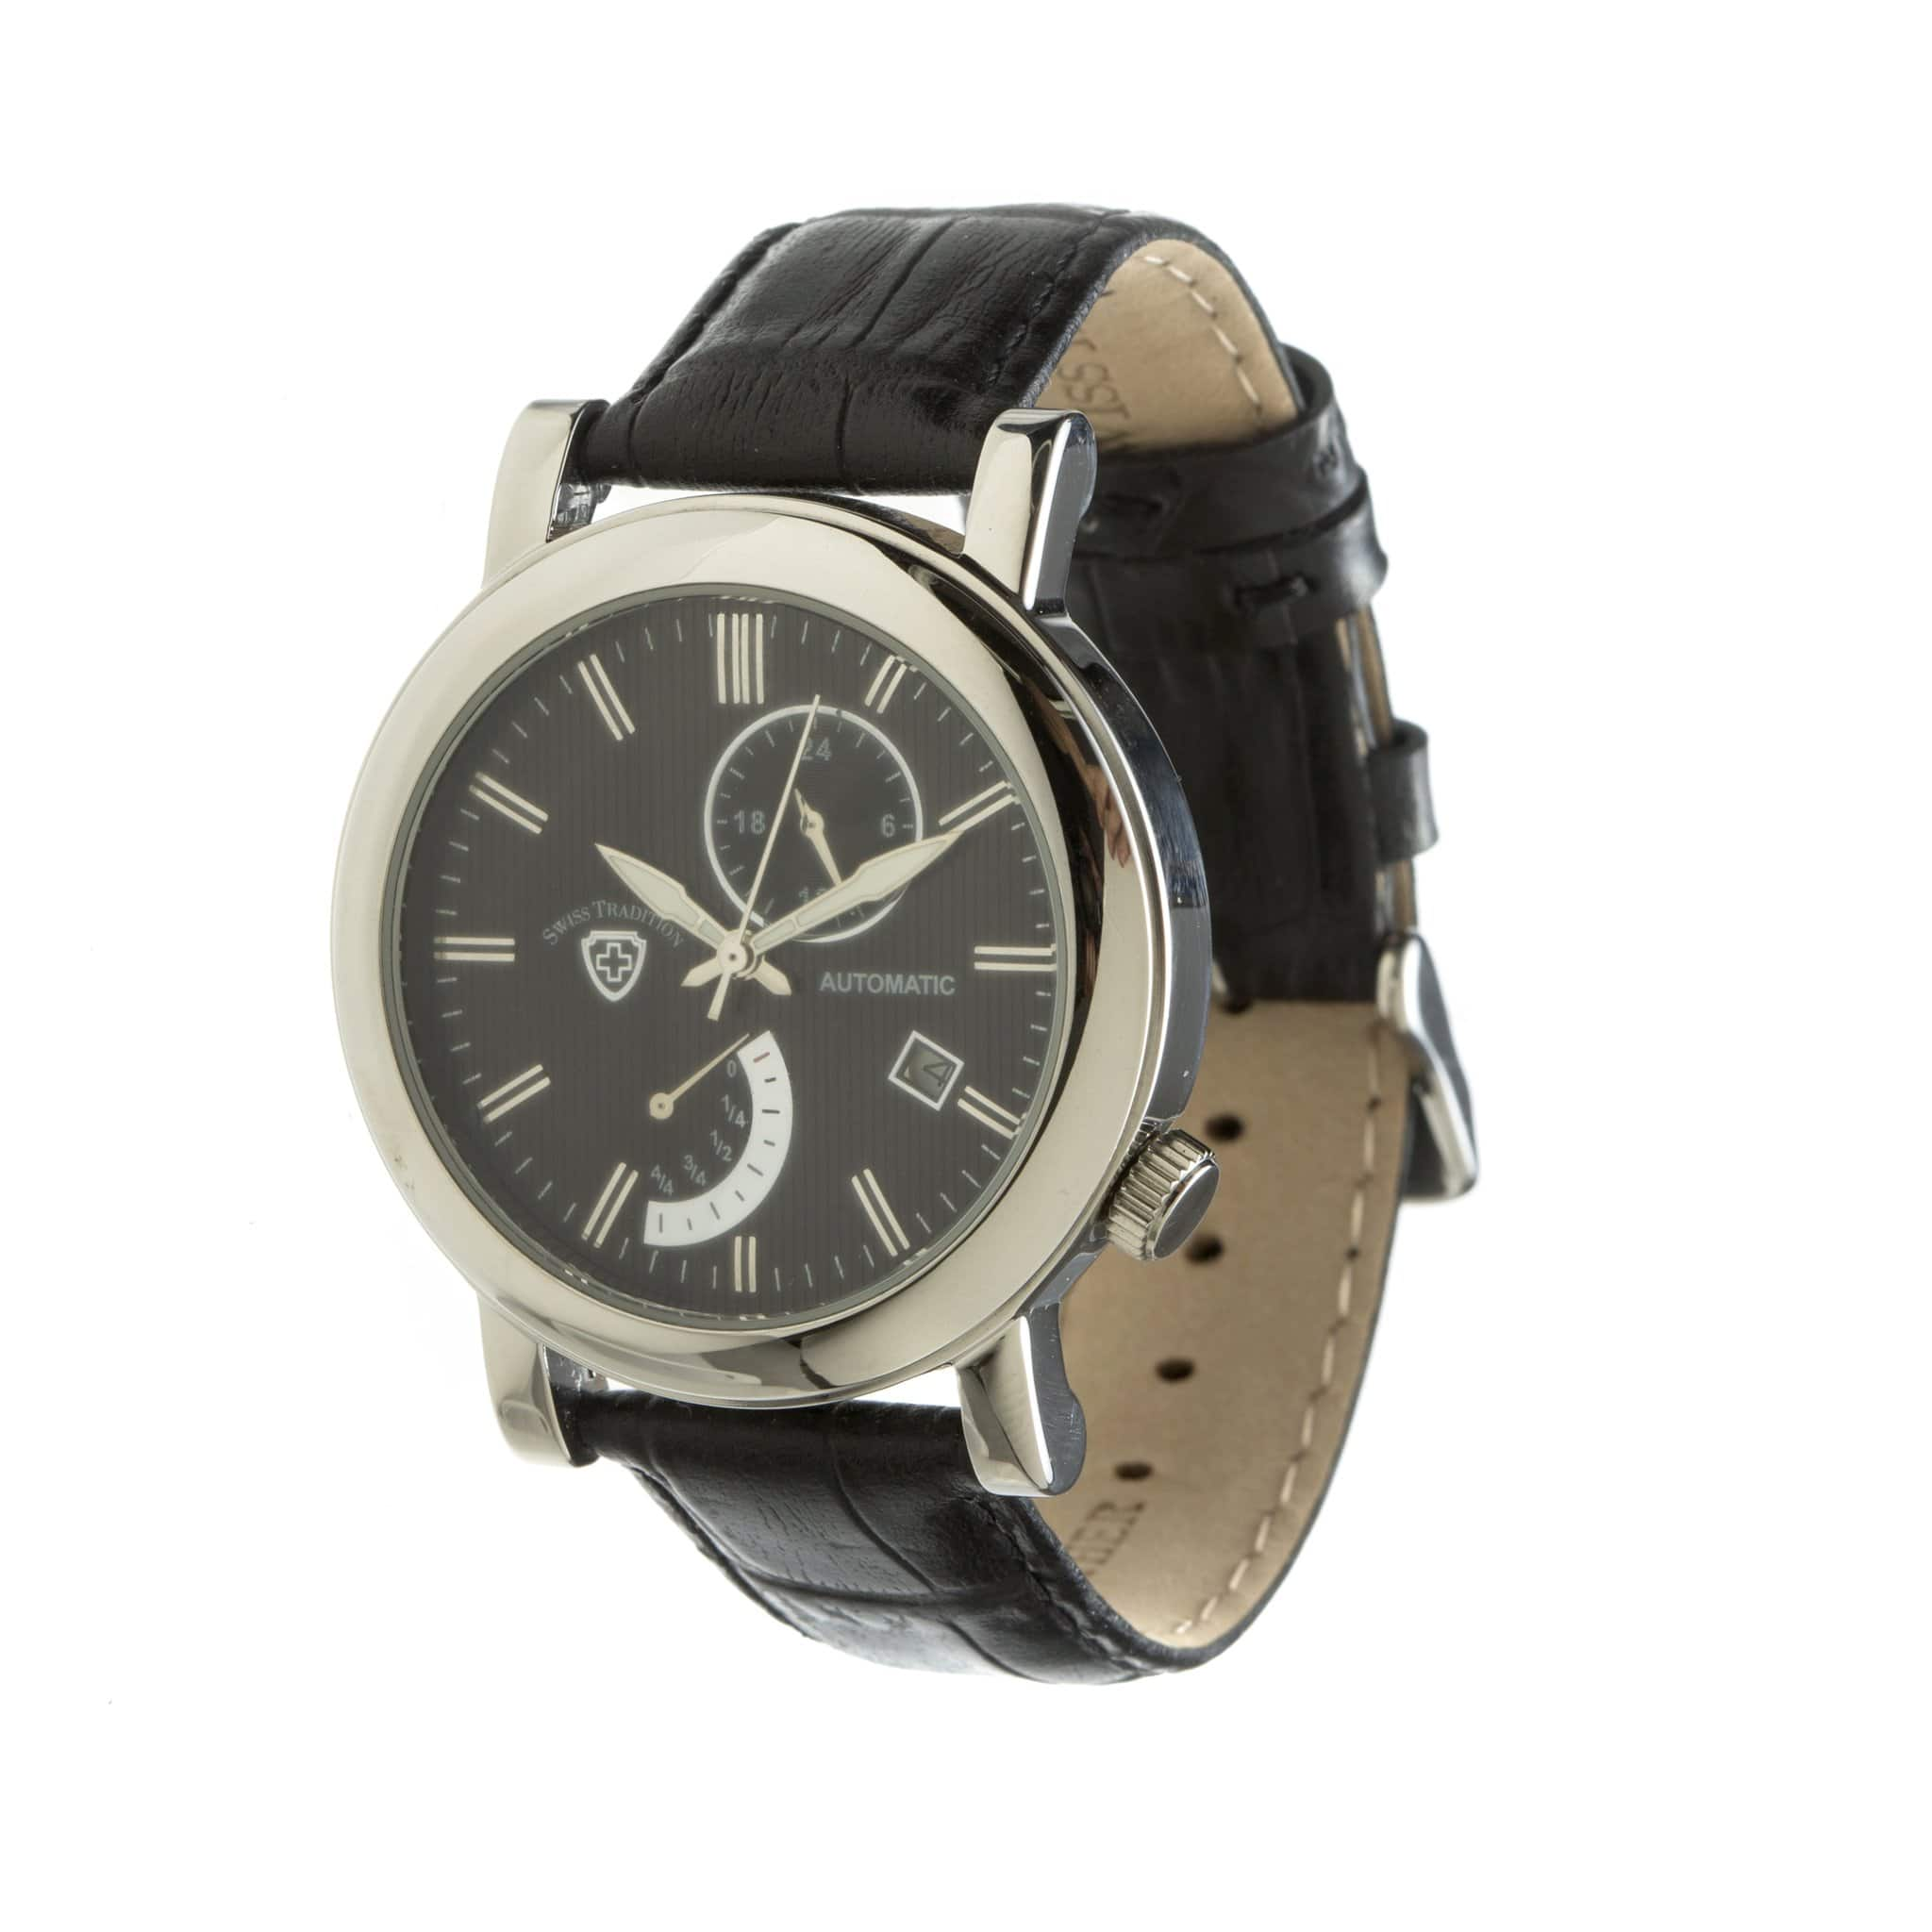 Swiss Tradition Men's & Women's Watches (various styles) $15 Each + Free Shipping